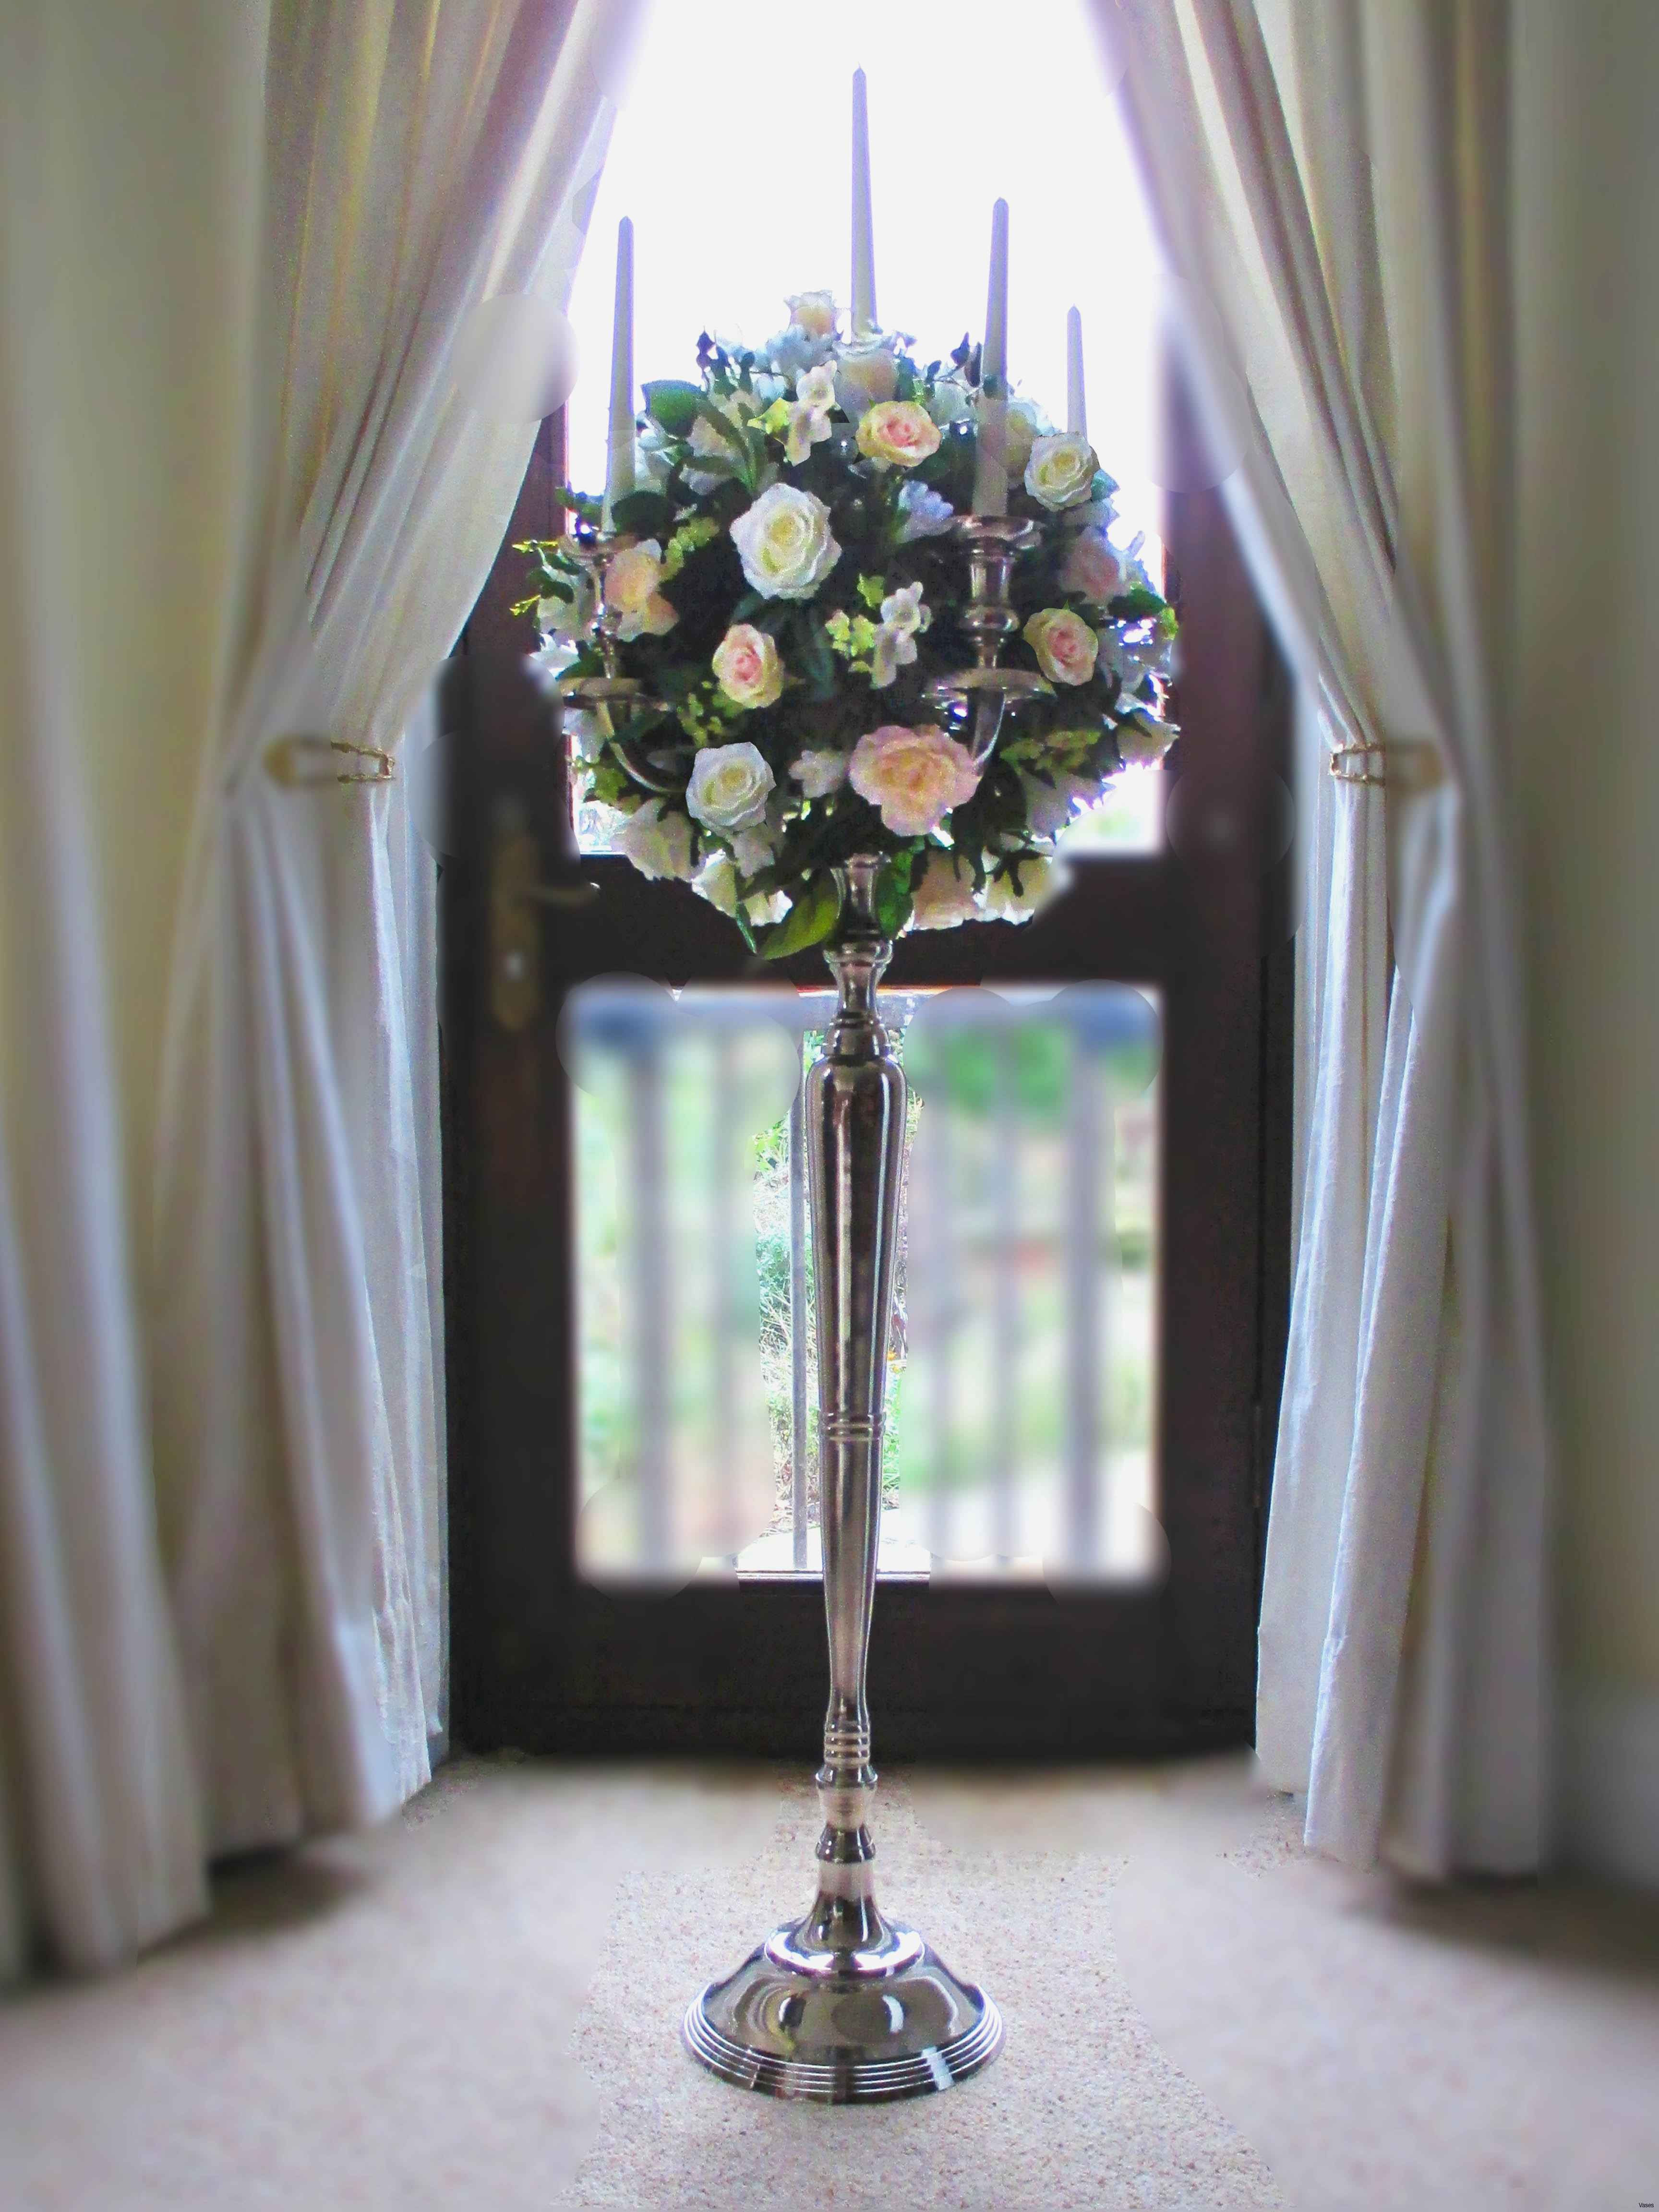 music note vase of inspirational fall themed wedding favors wedding theme pertaining to cheap wedding bouquets packages 5397h vases silver vase leeds i 0d inspiration outdoor fall wedding